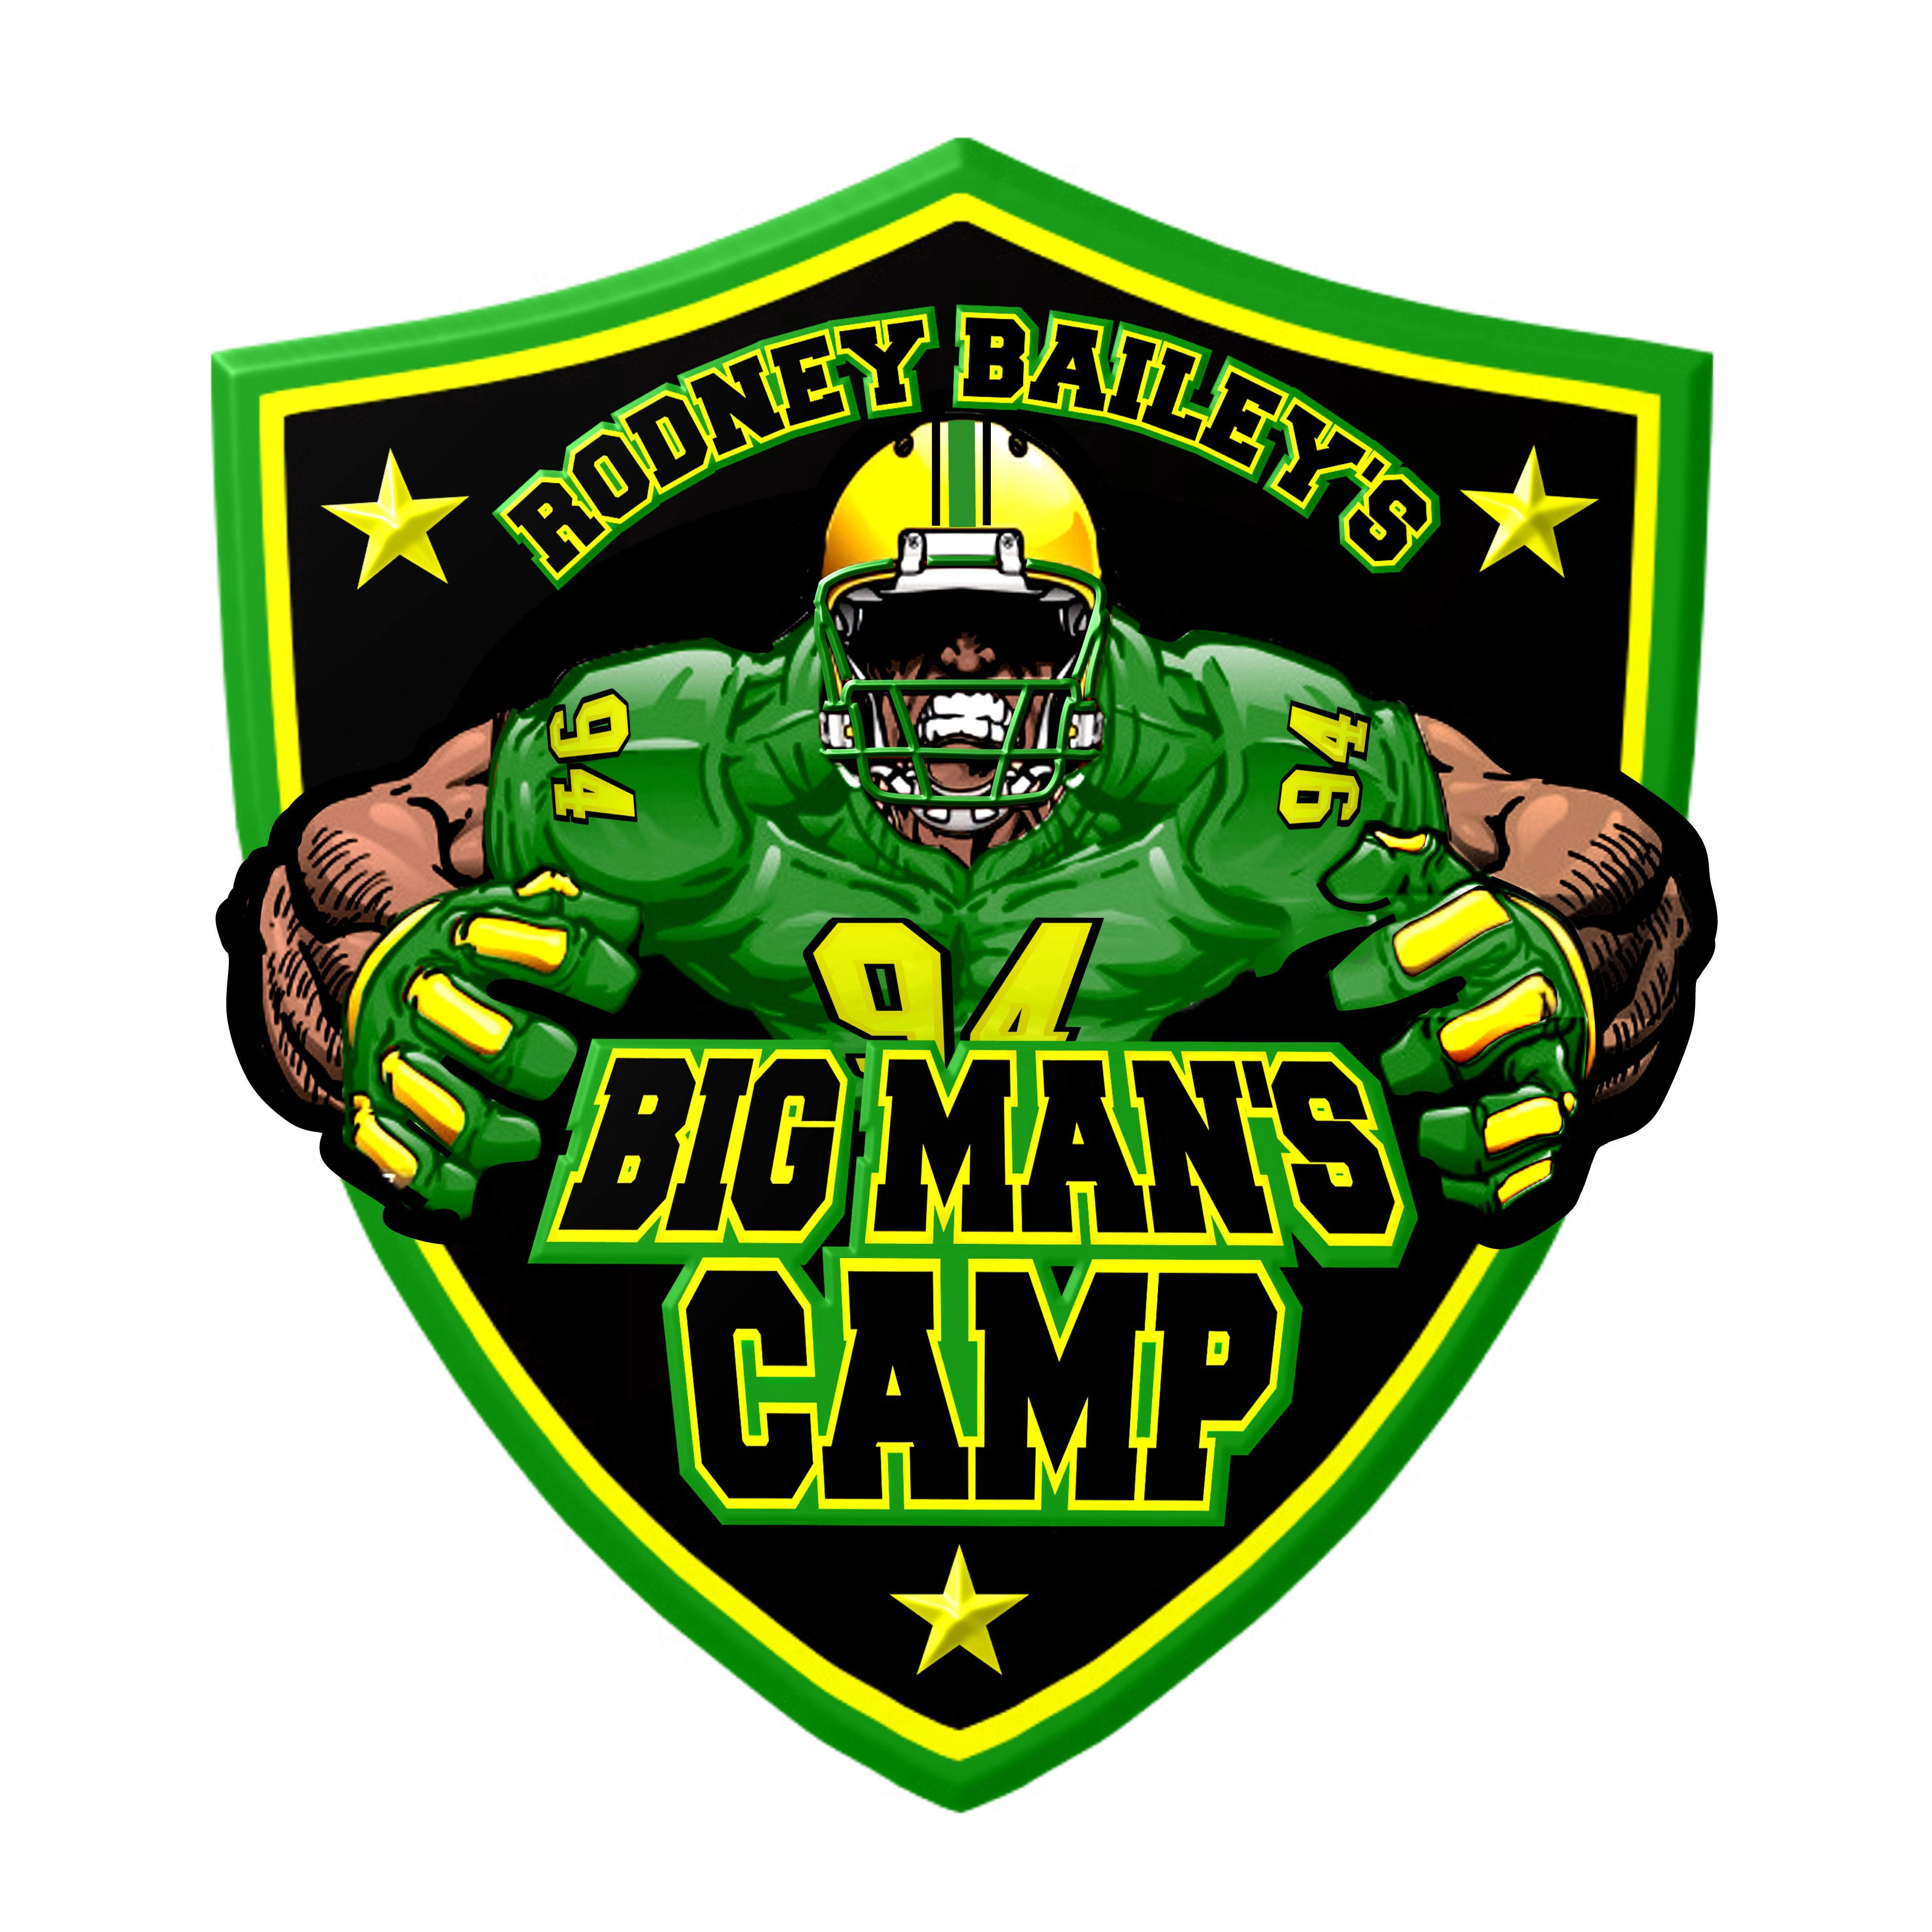 RB BIG MANS CAMP LOGO -GREEN-BLK.png